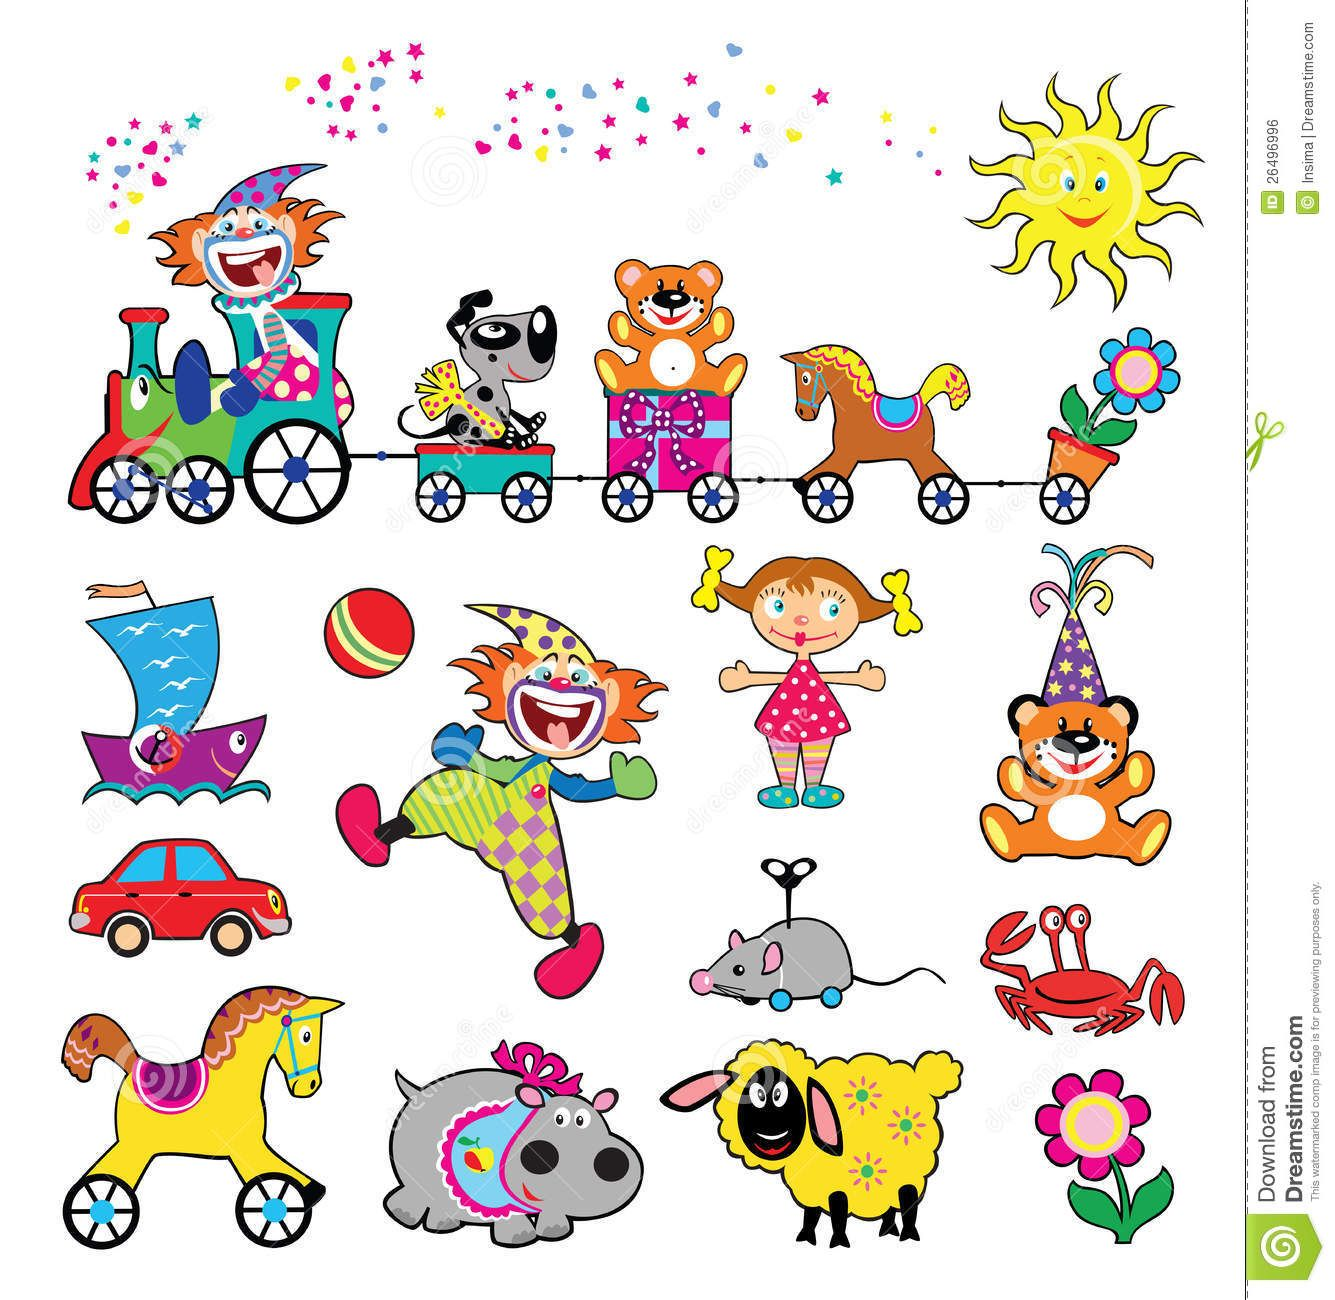 Cuadros infantiles Simple pictures, Cute pictures